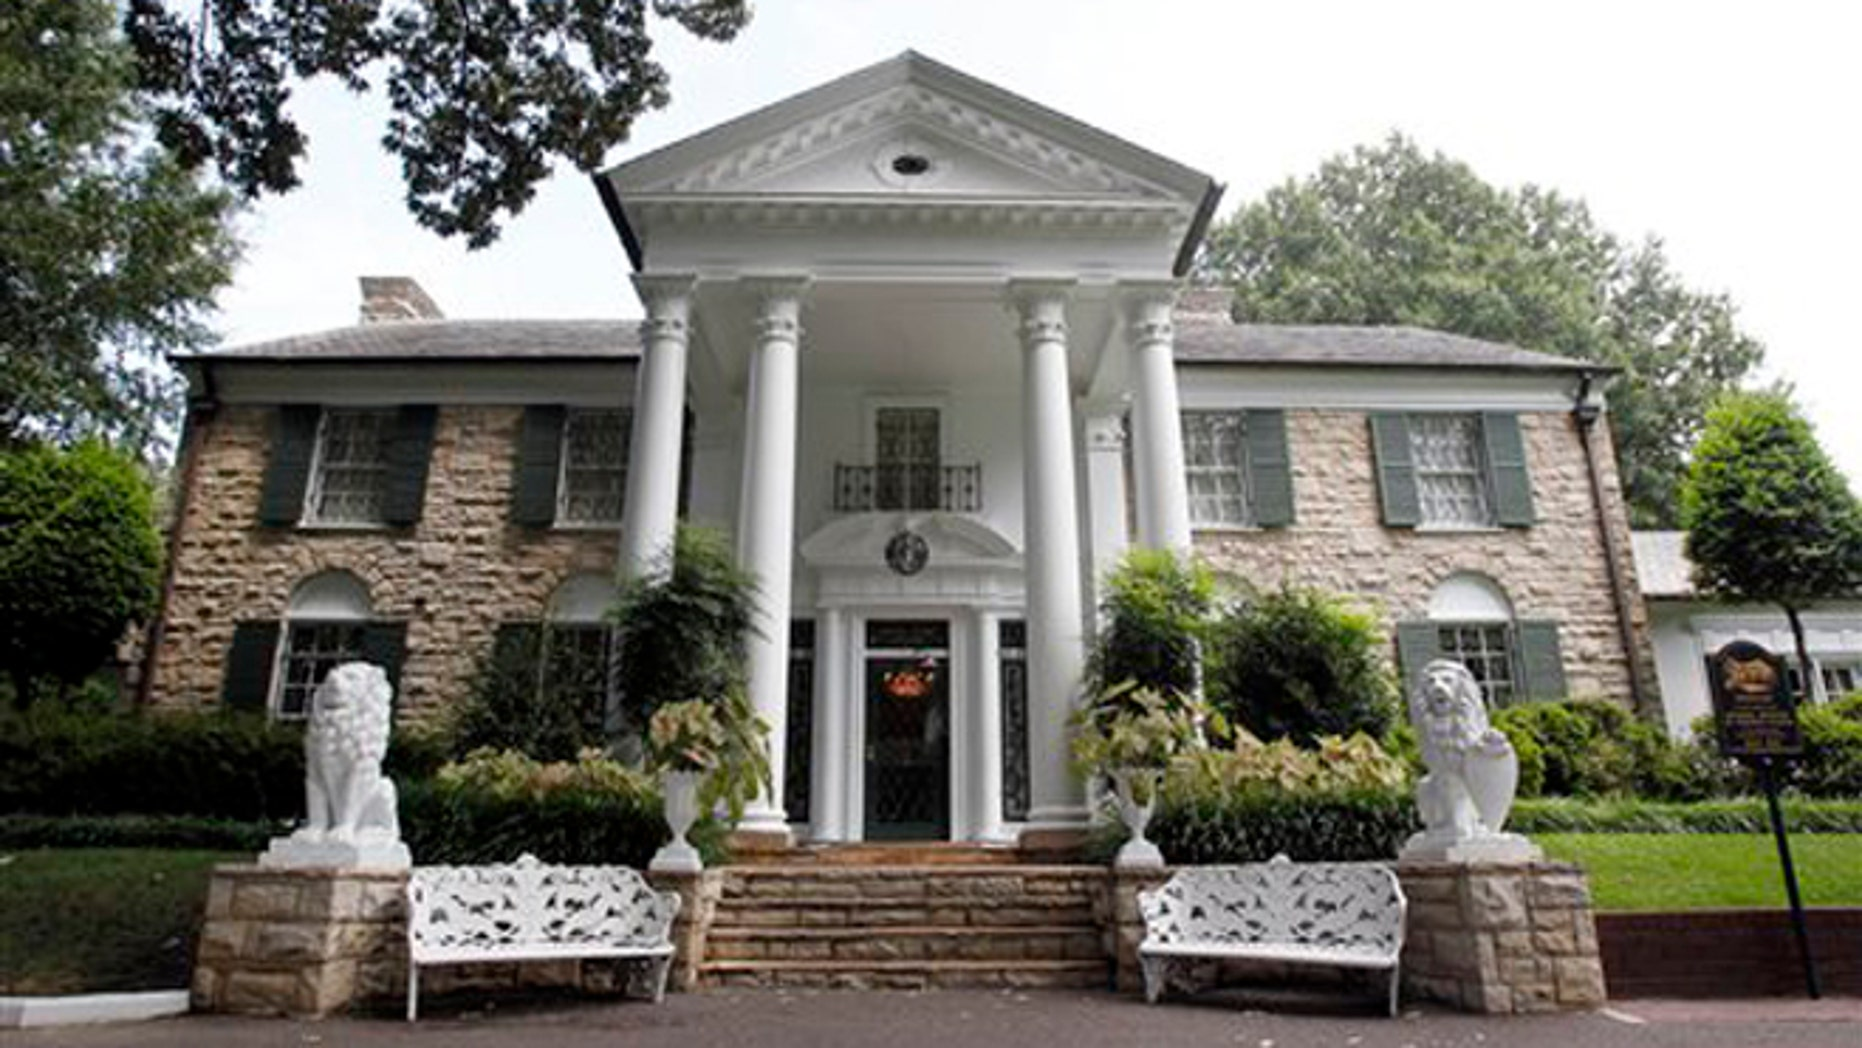 FILE -- This  Aug. 2010 photo shows Graceland, Elvis Presley's home in Memphis, Tenn. Graceland opened for tours on June 7, 1982. They sold out all 3,024 tickets on the first day and didn't look back, forever changing the Memphis tourist landscape while keeping Elvis and his legend alive.(AP Photo/Mark Humphrey)